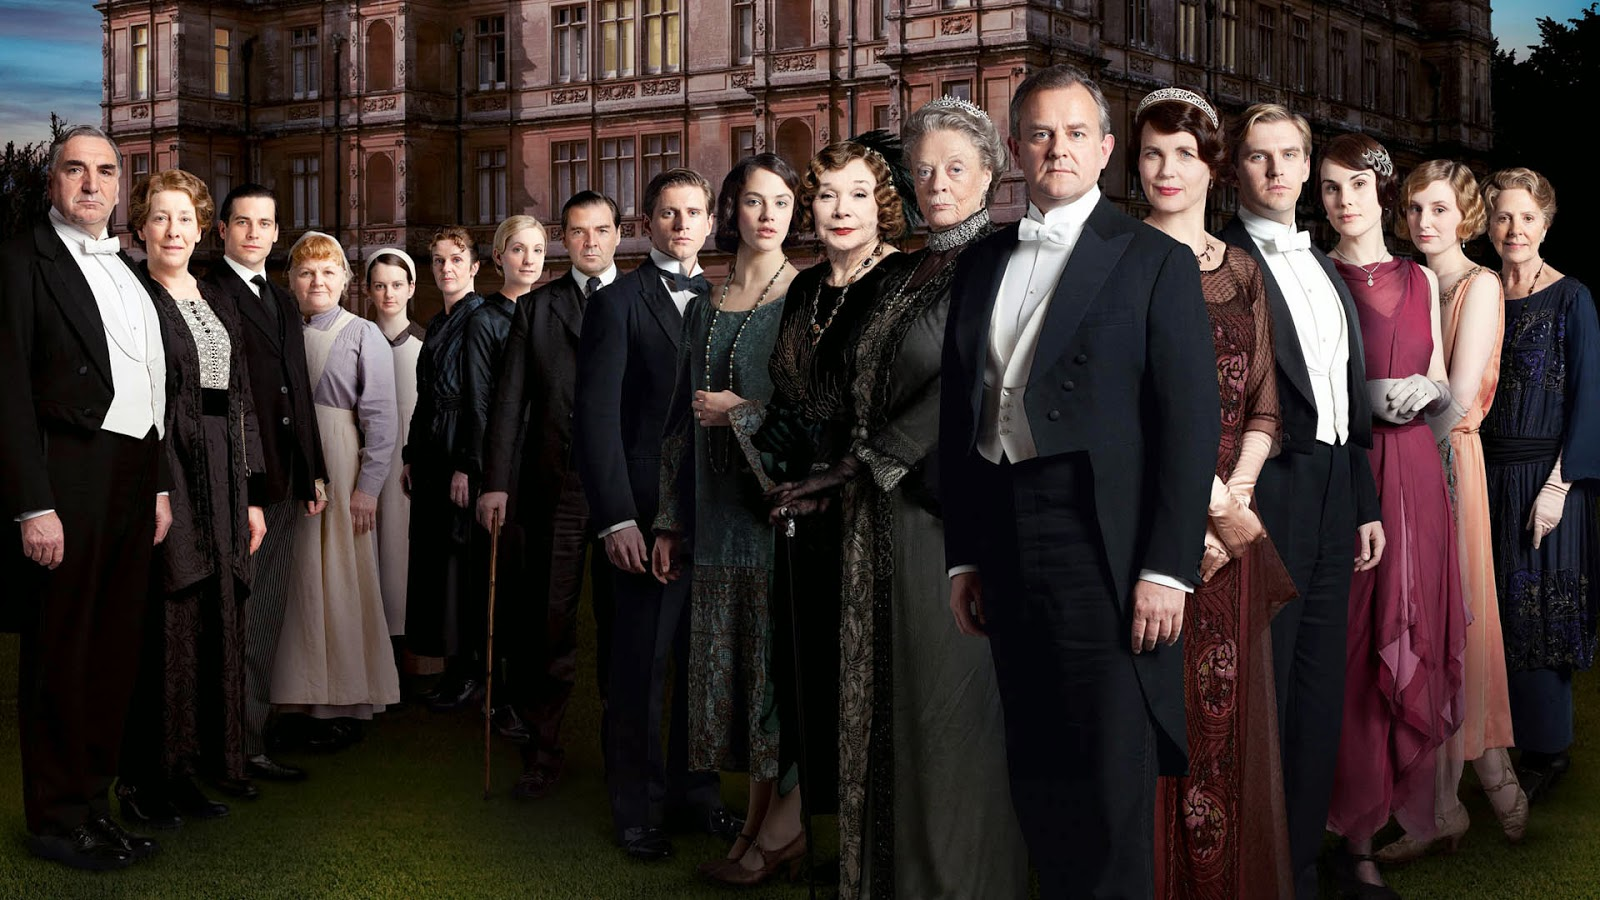 downton abbey (costumes & sets from series 1 & 2) ~ sweet sunday